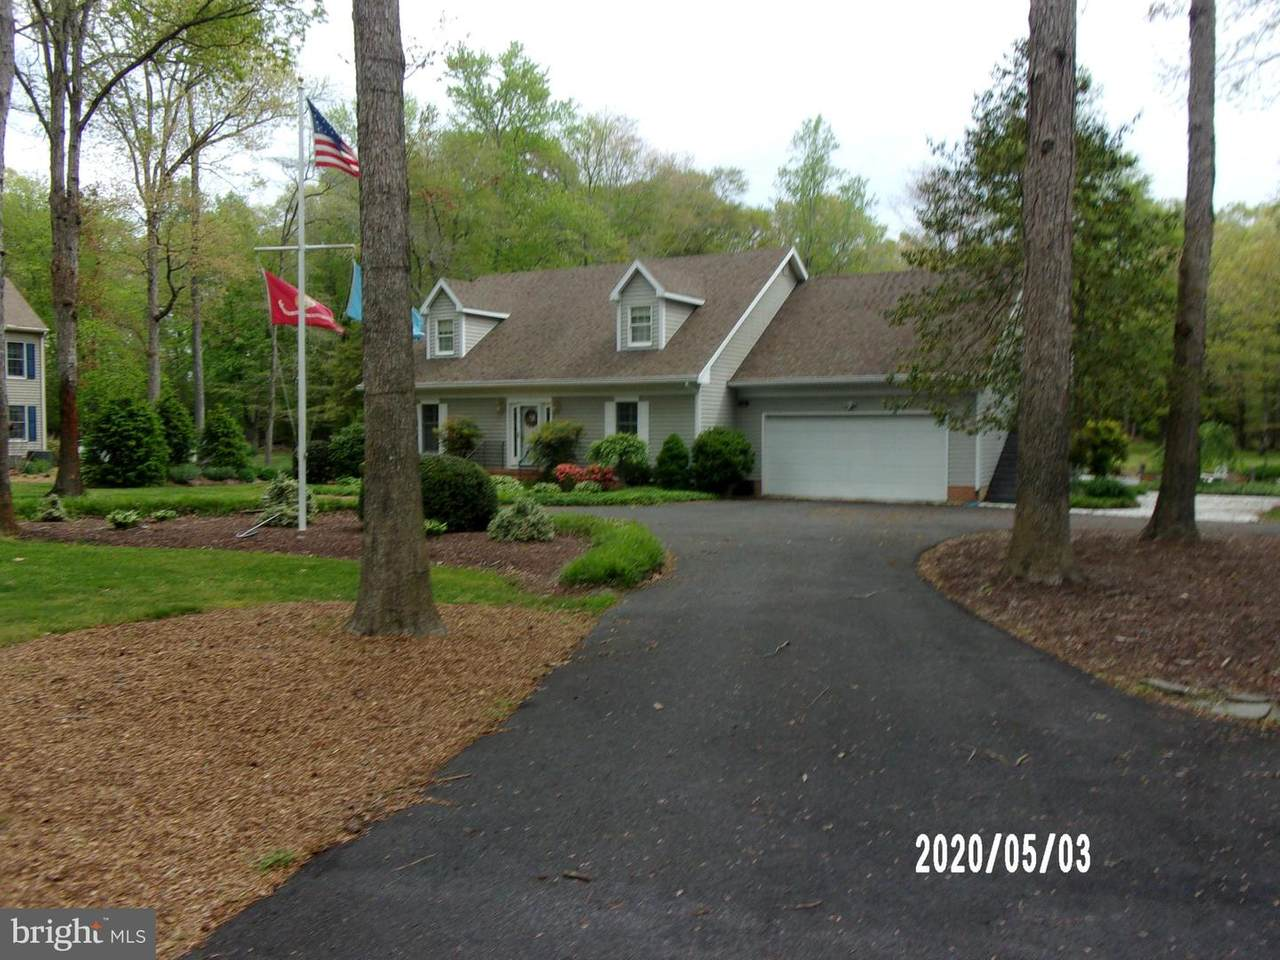 22835 Wood Branch Road - Photo 1